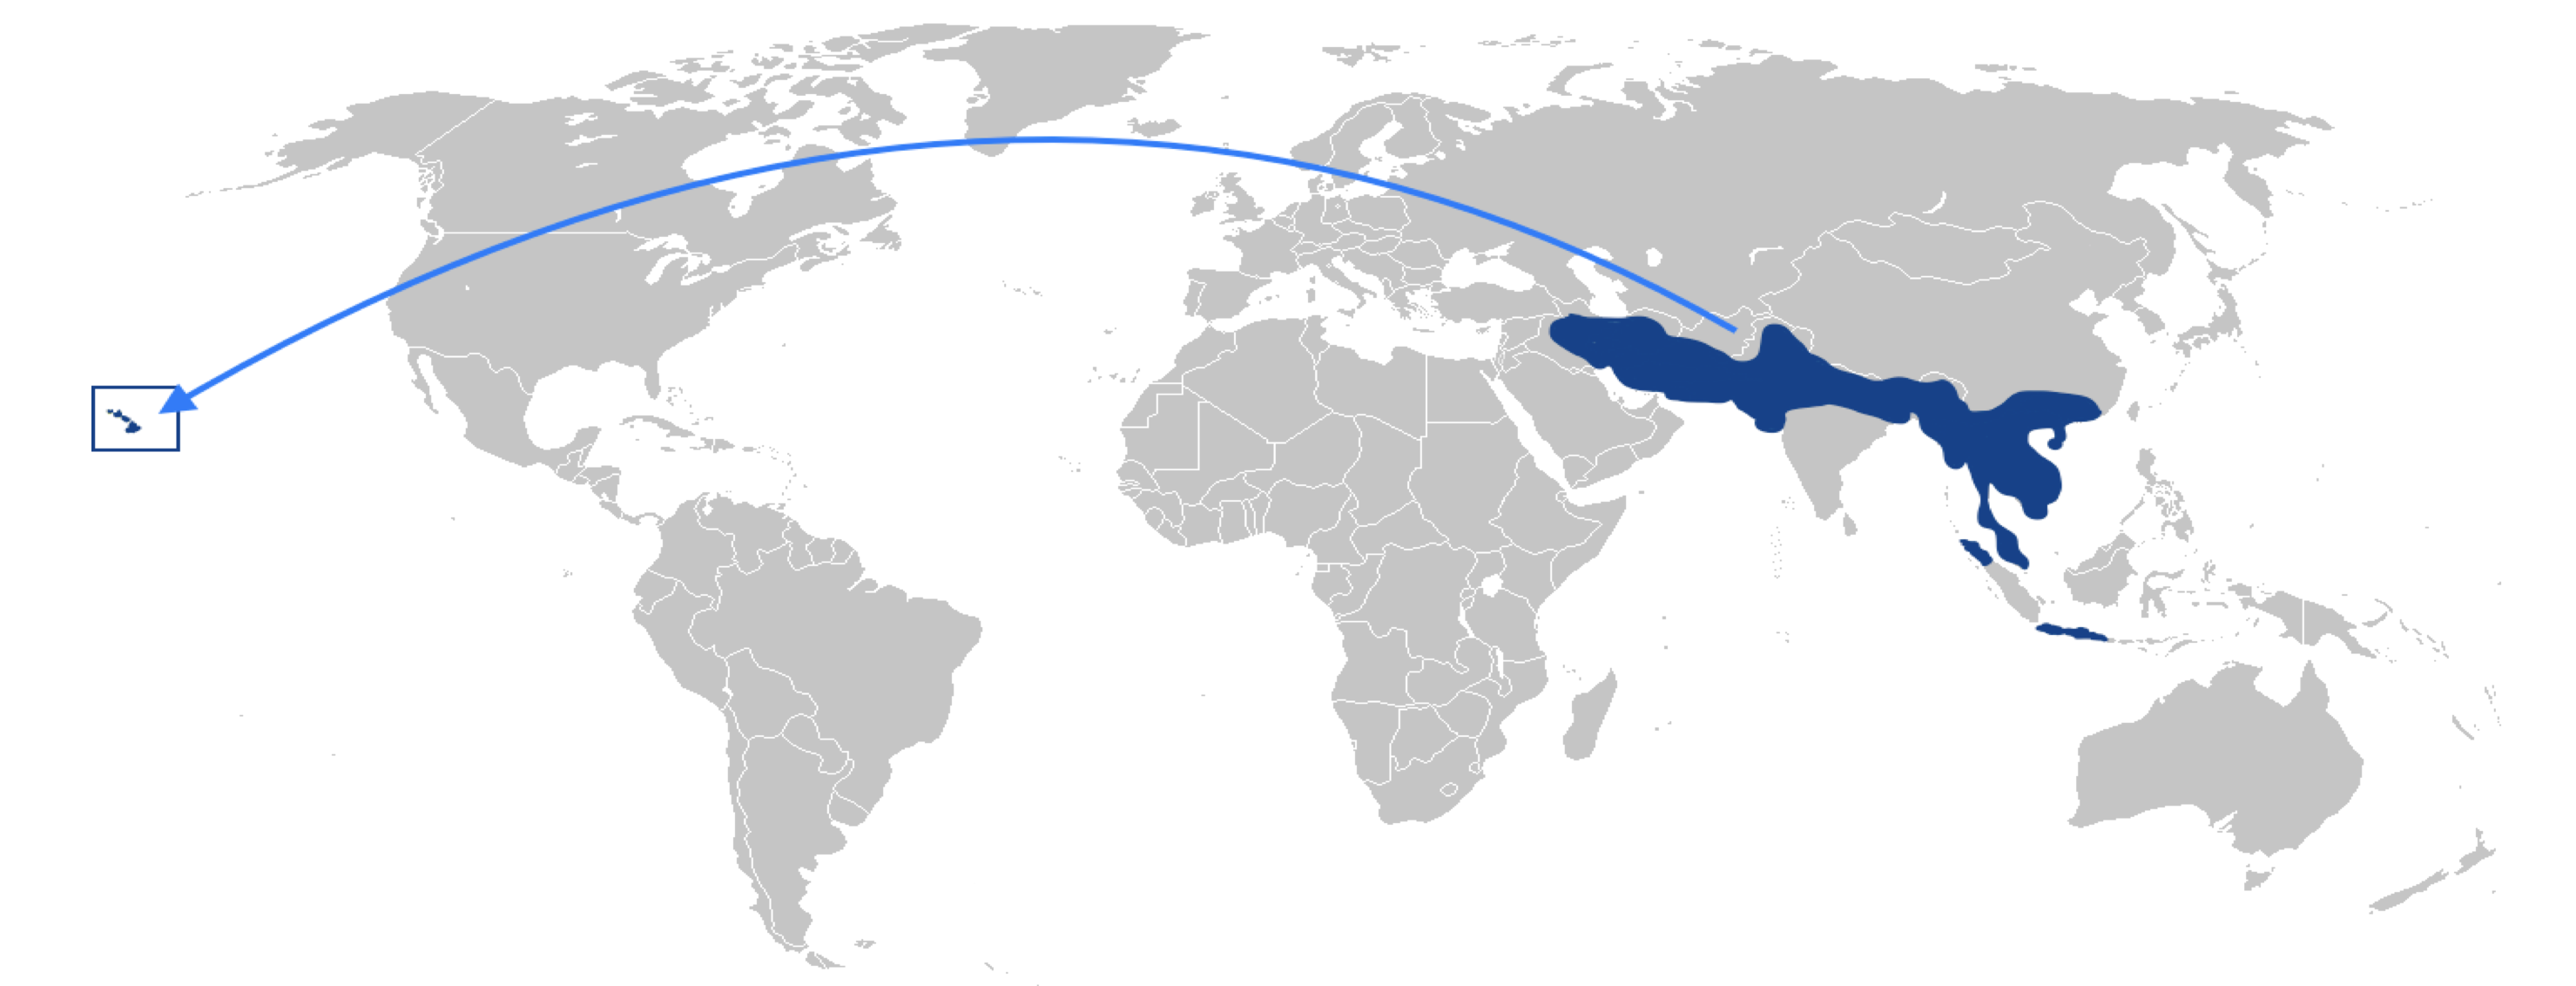 world map showing the native range of the mongoose with an arrow drawn to Hawaii where the mongoose has now occupied